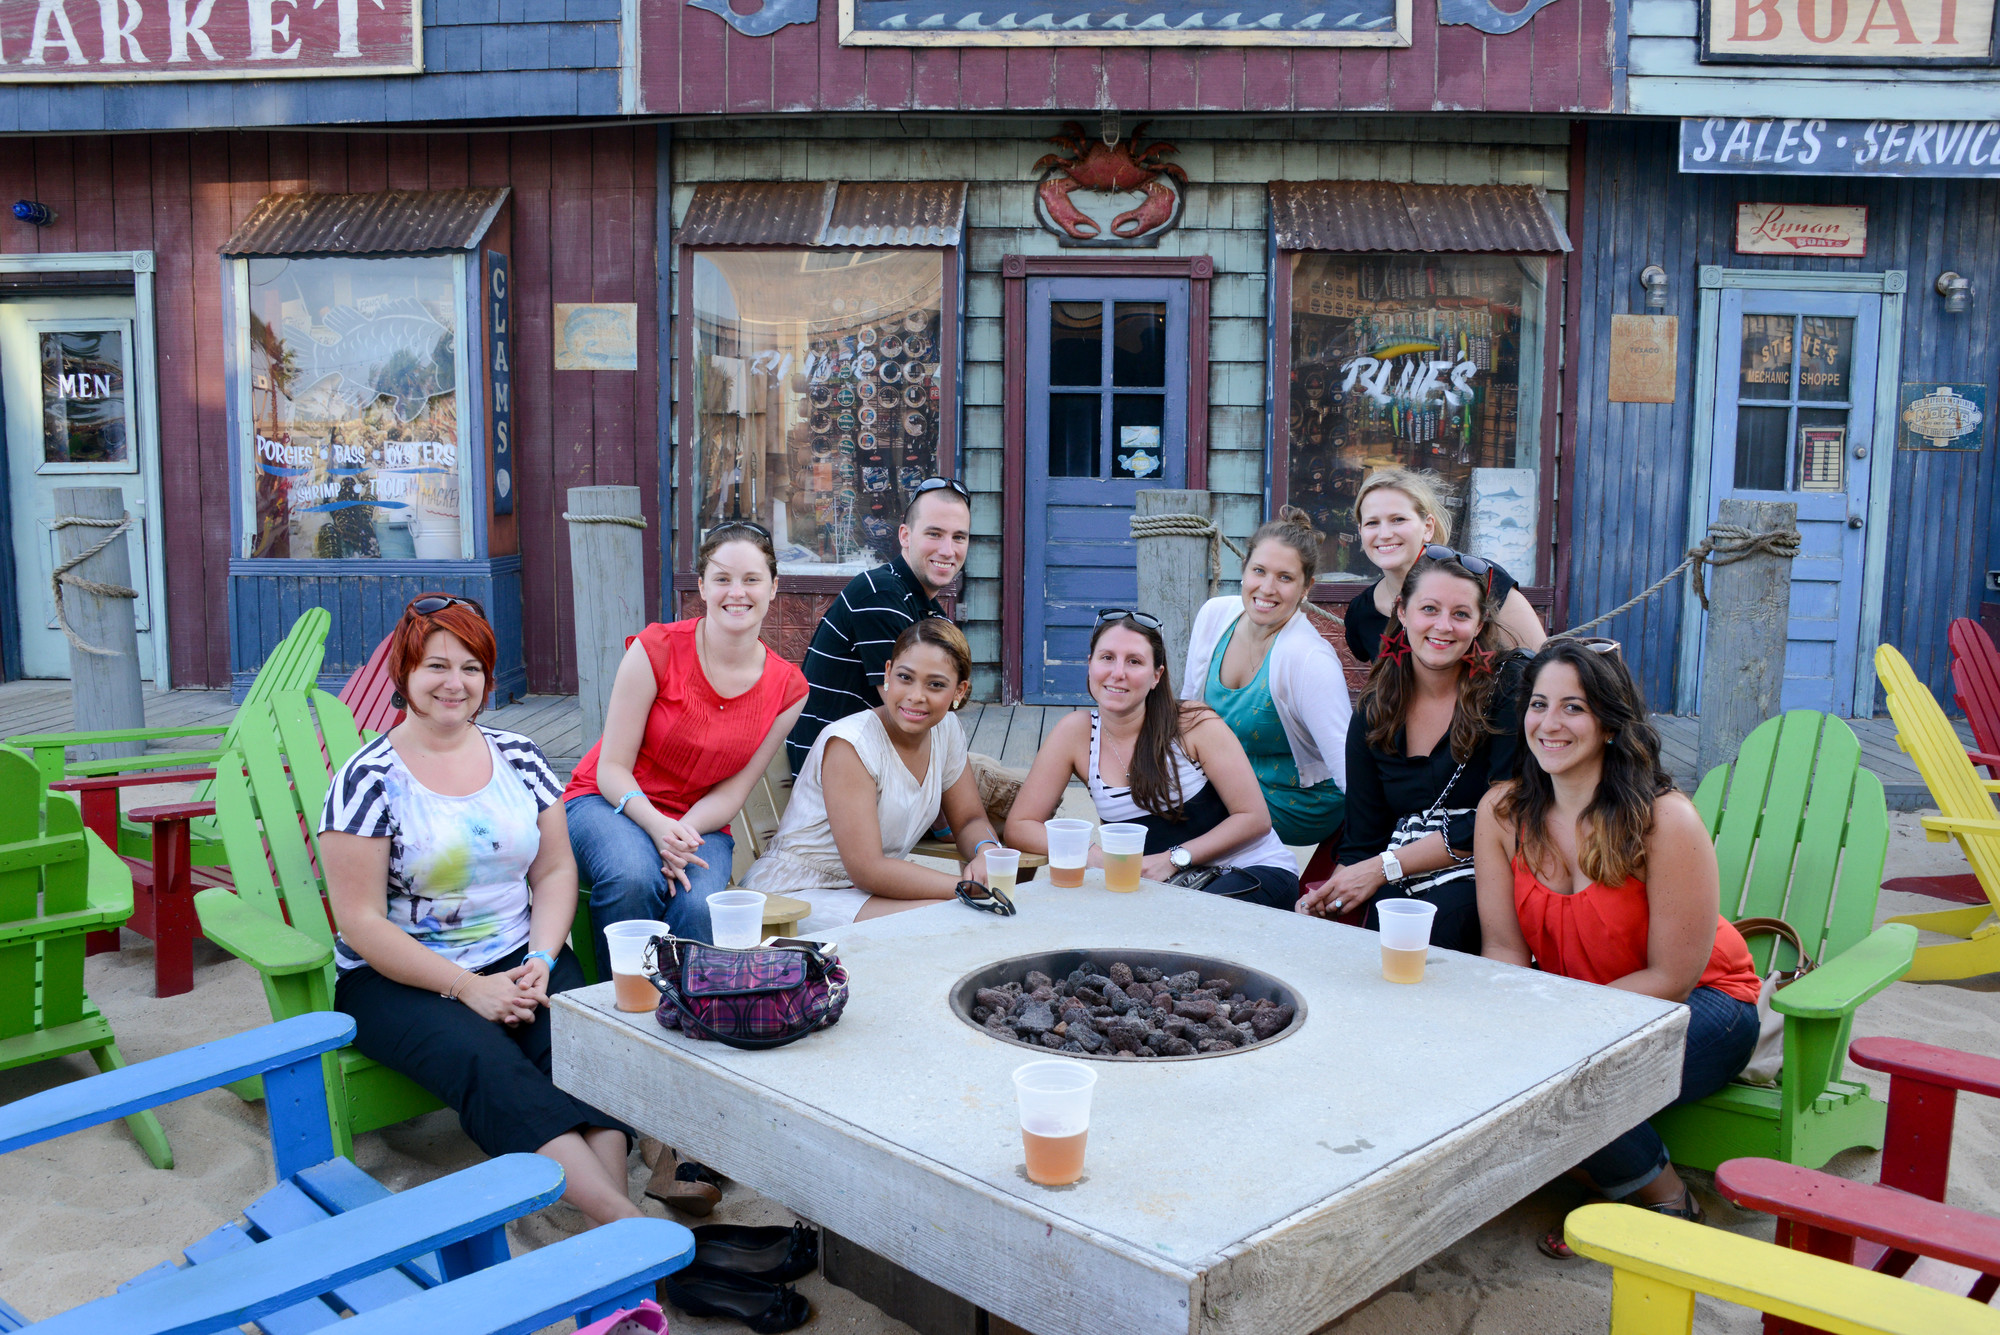 Sand, sun and suds. From left, Bridgett Barlett, Sammi Dahl, Misaury Jaquez, Eric Eggert, Nicole Lippel, Stephanie Ciantro, Samantha Barry, Amanda Schultze and Luciana Ventimiglia enjoy the scenery at Pop'S Seafood Shack.